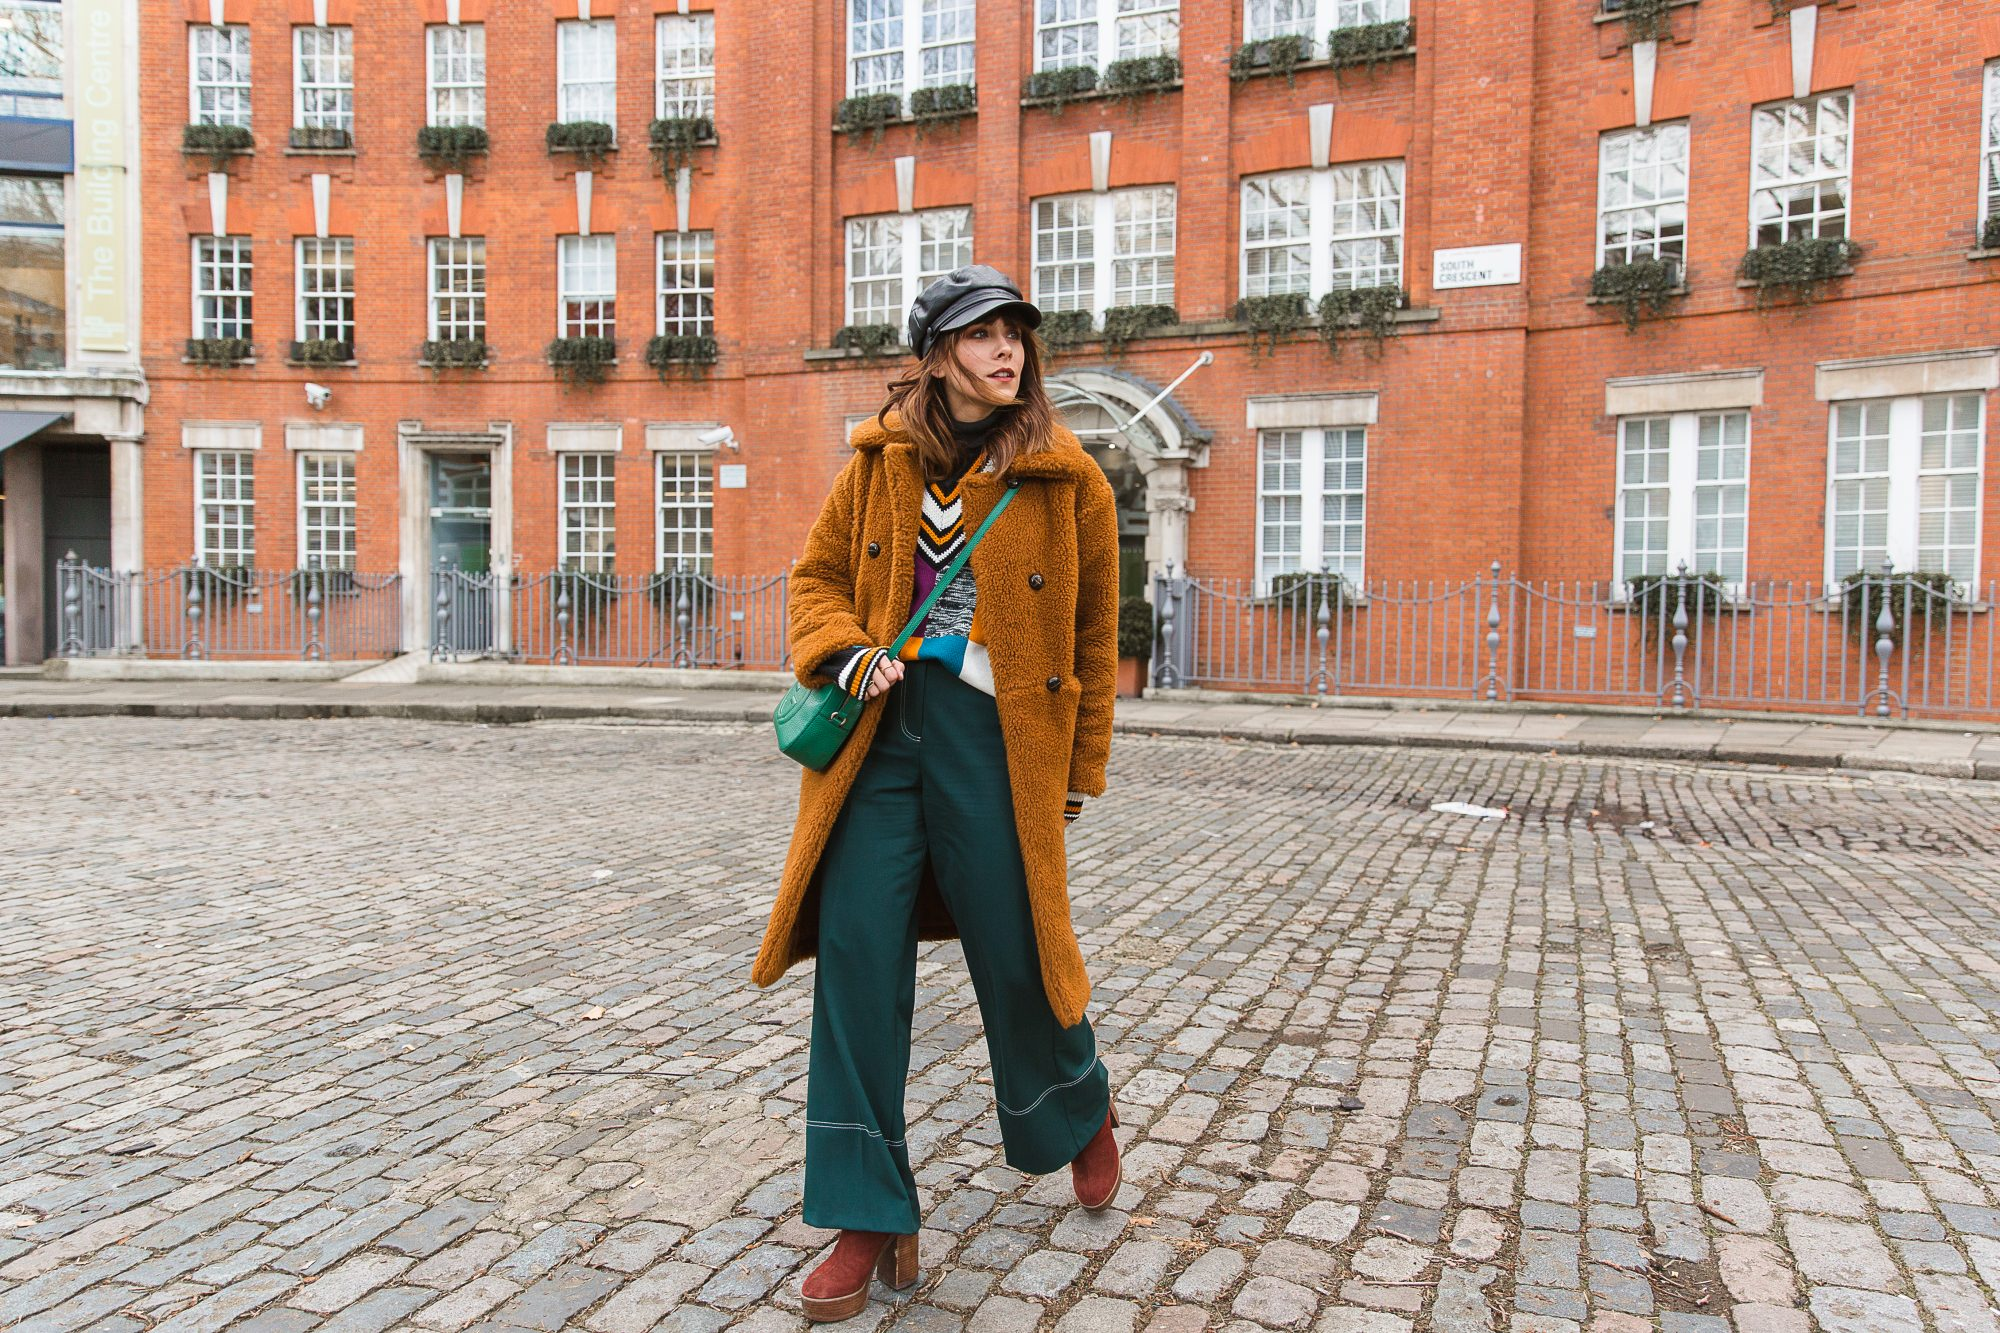 MEGAN ELLABY HOW TO WEAR FLARED TROUSERS